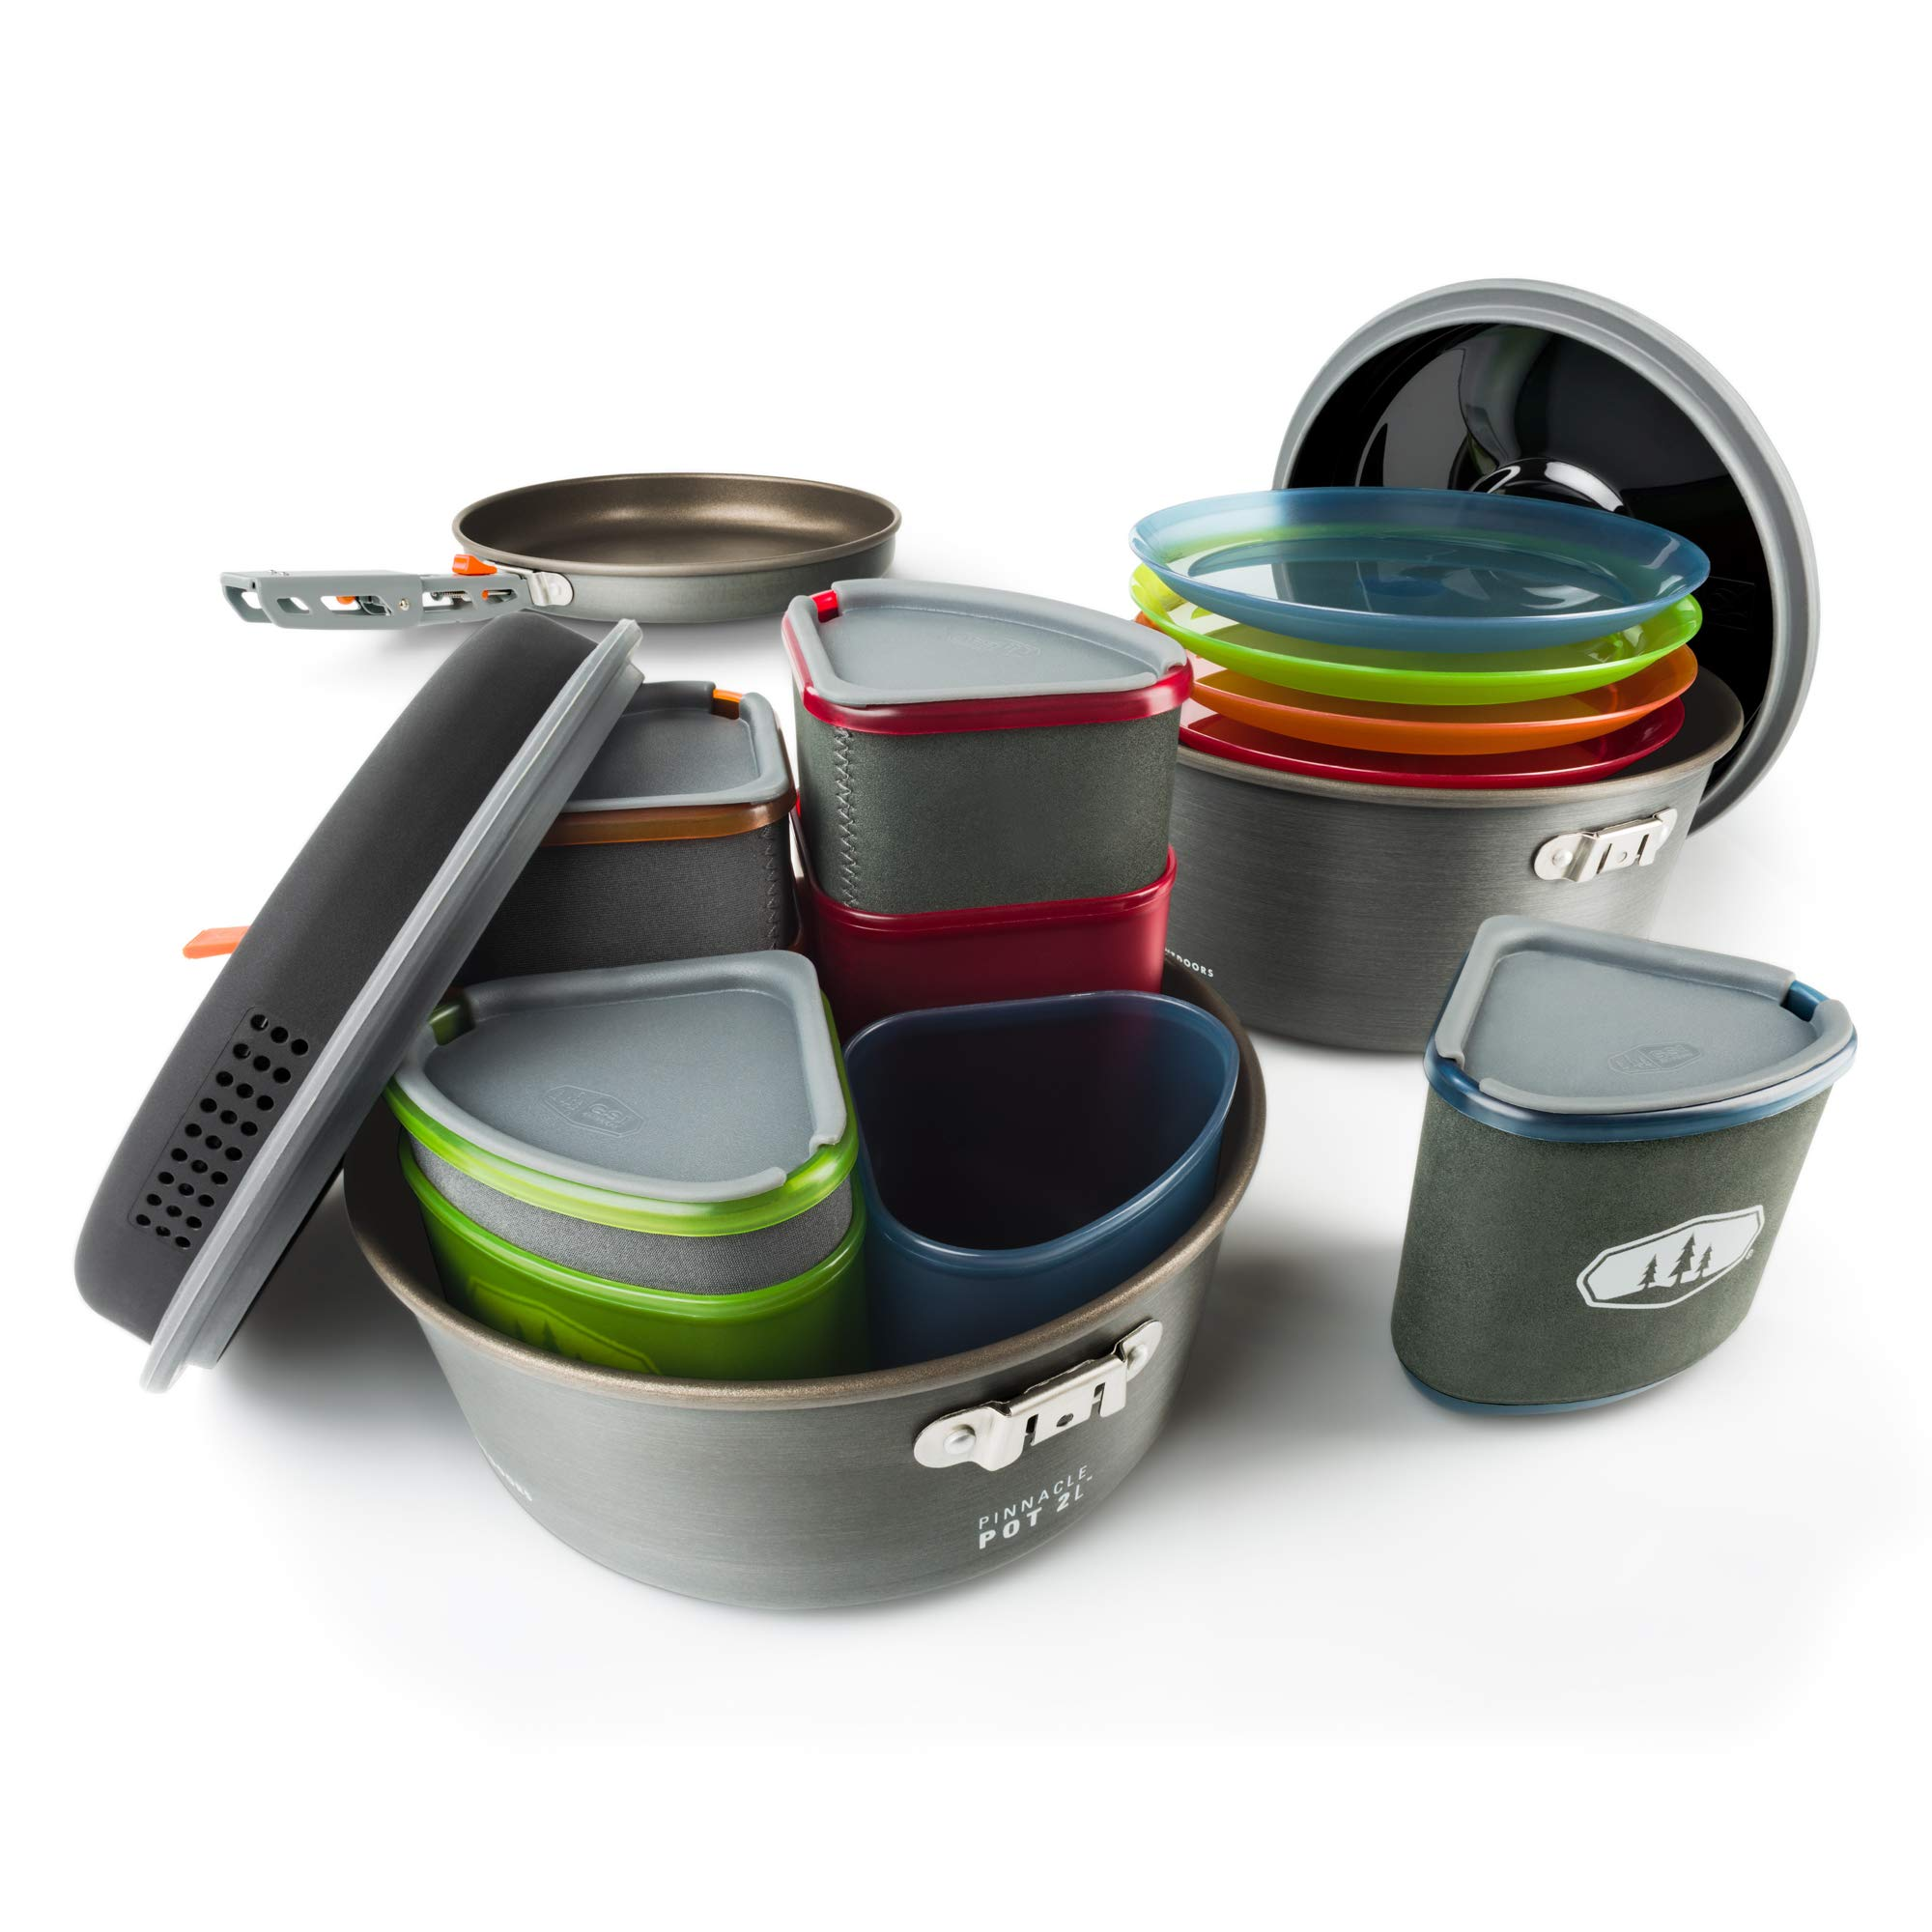 GSI Outdoors, Pinnacle Camper Cooking Set for Camping and Backpacking, 2 to 4 Person